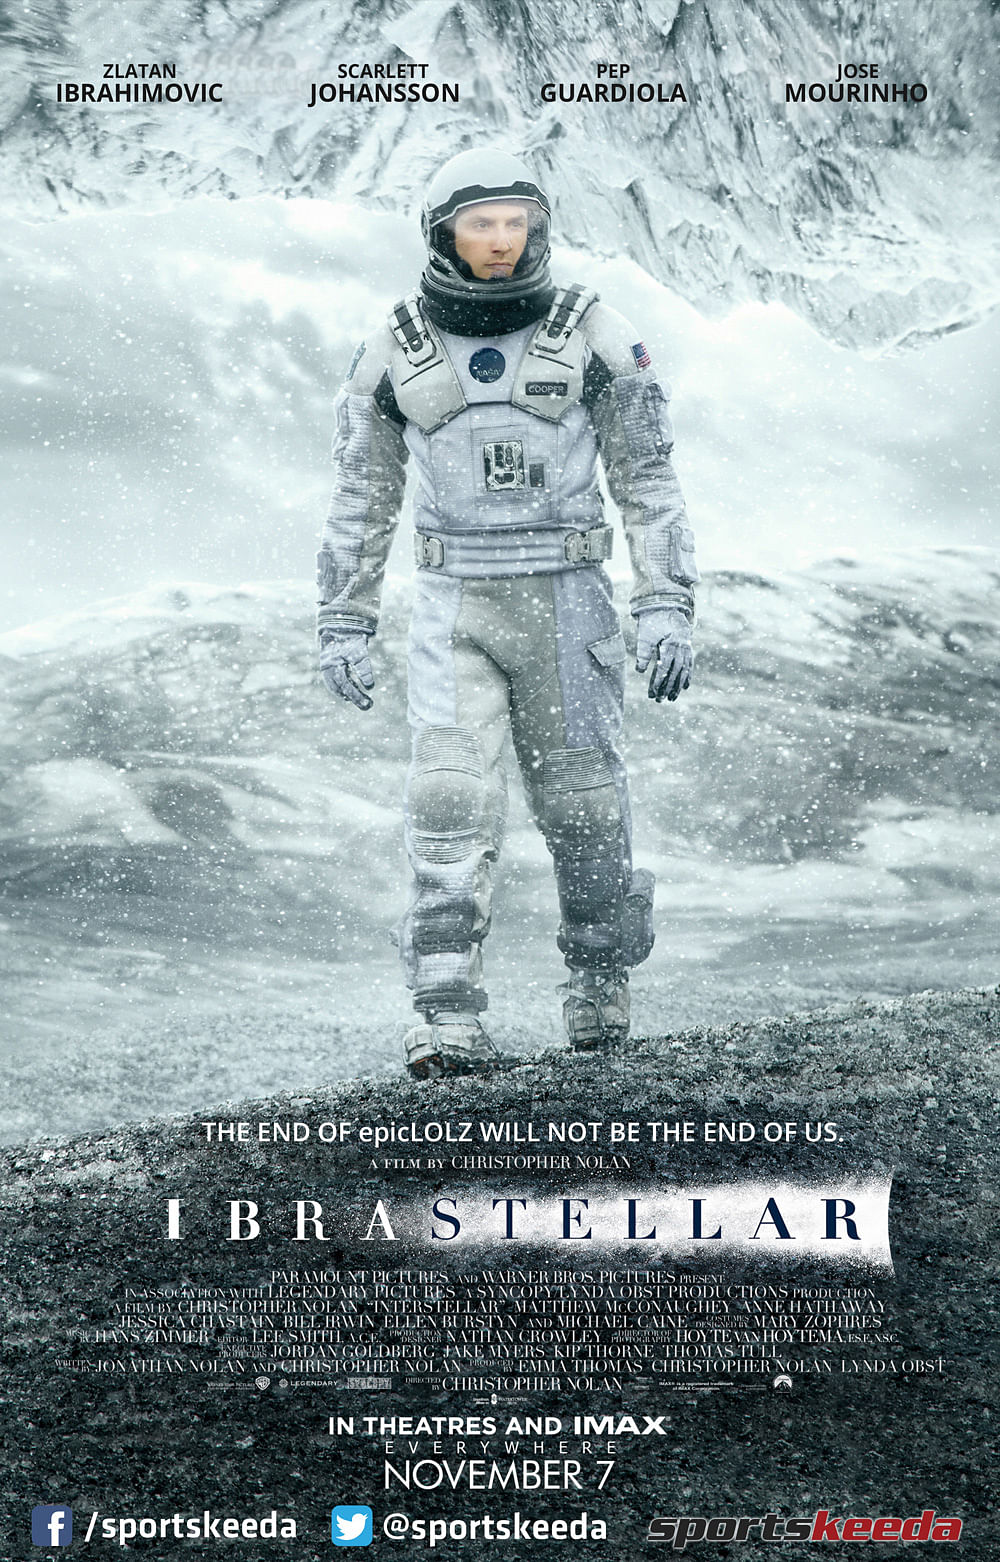 Humour: Christopher Nolan confirms plans for Interstellar-sequel 'Ibrastellar' featuring Zlatan Ibrahimovic